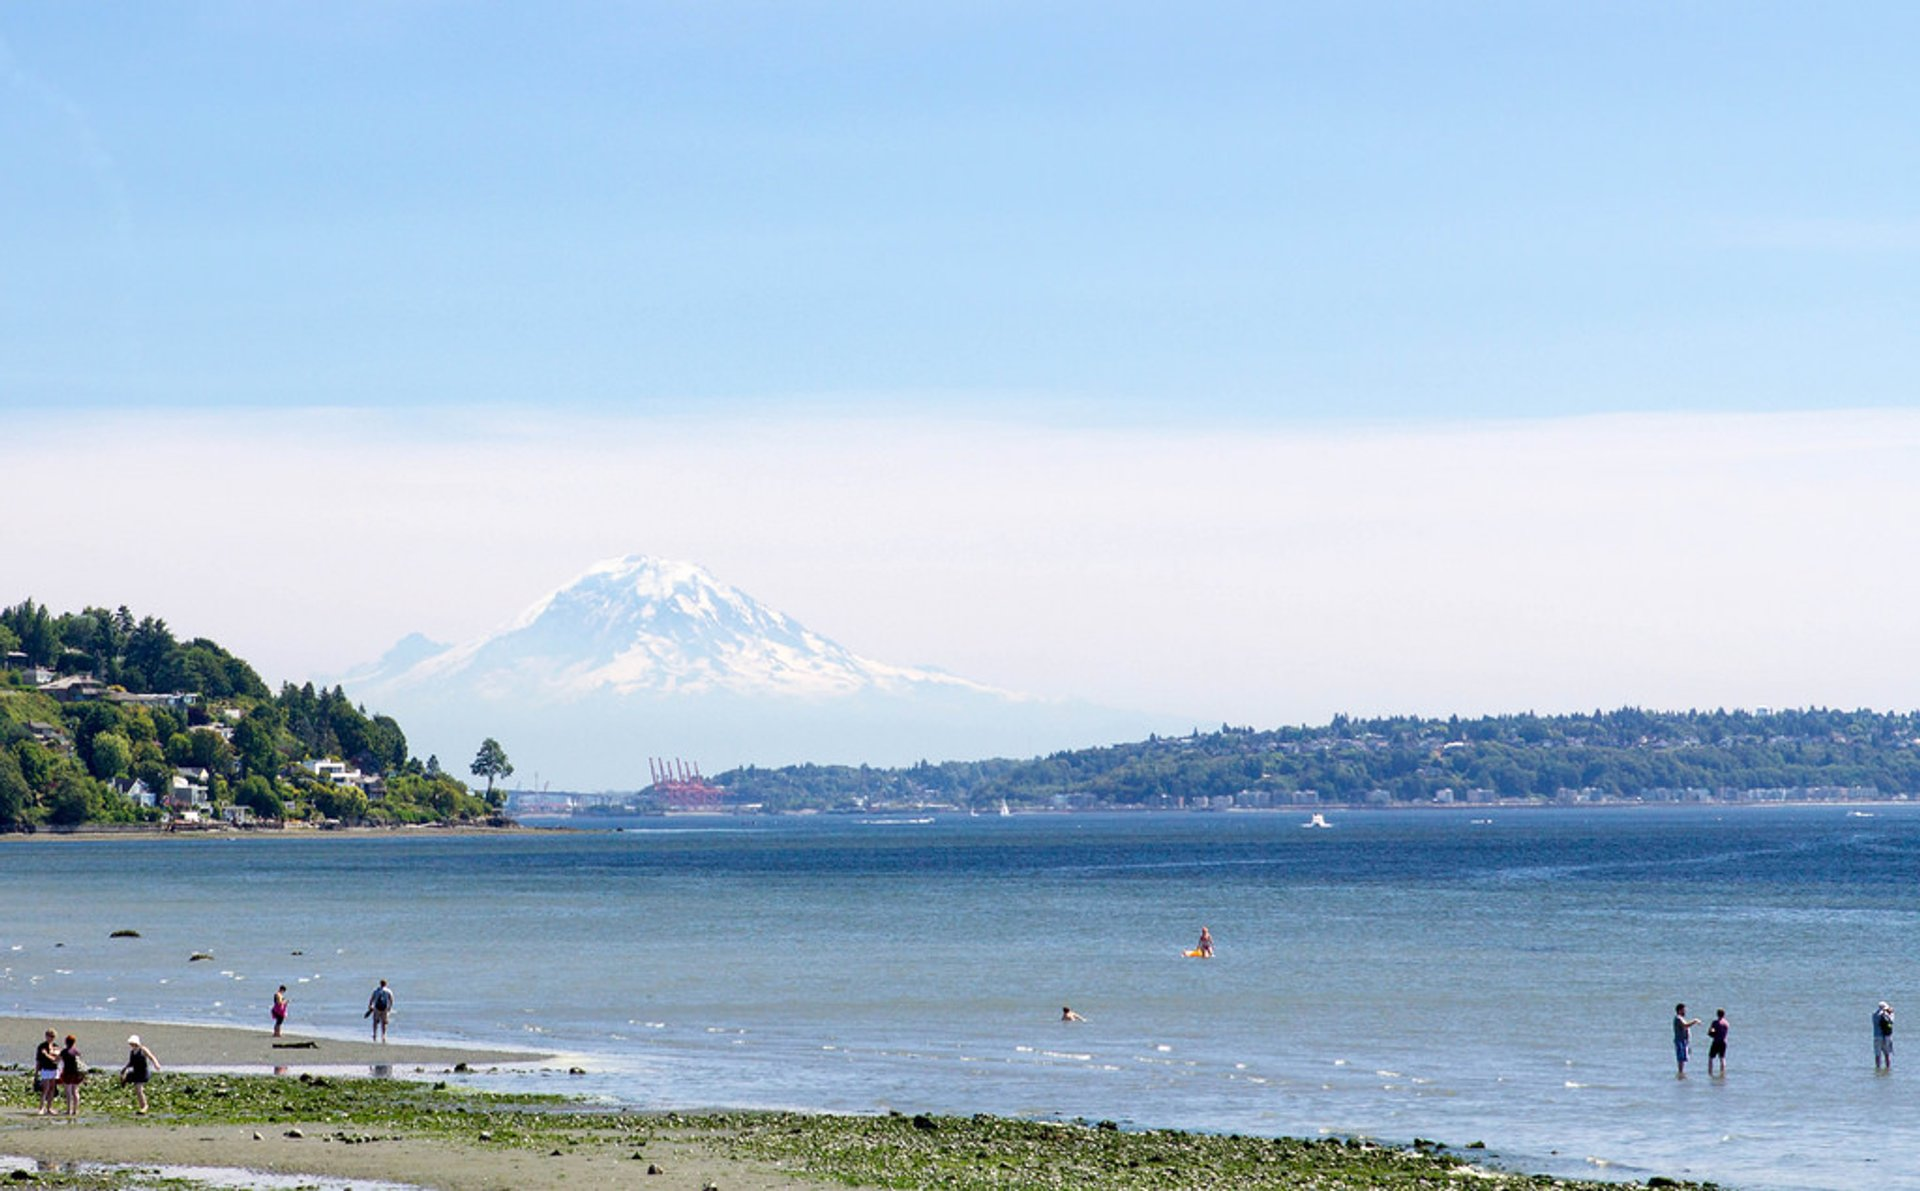 Beach Season in Seattle 2019 - Best Time